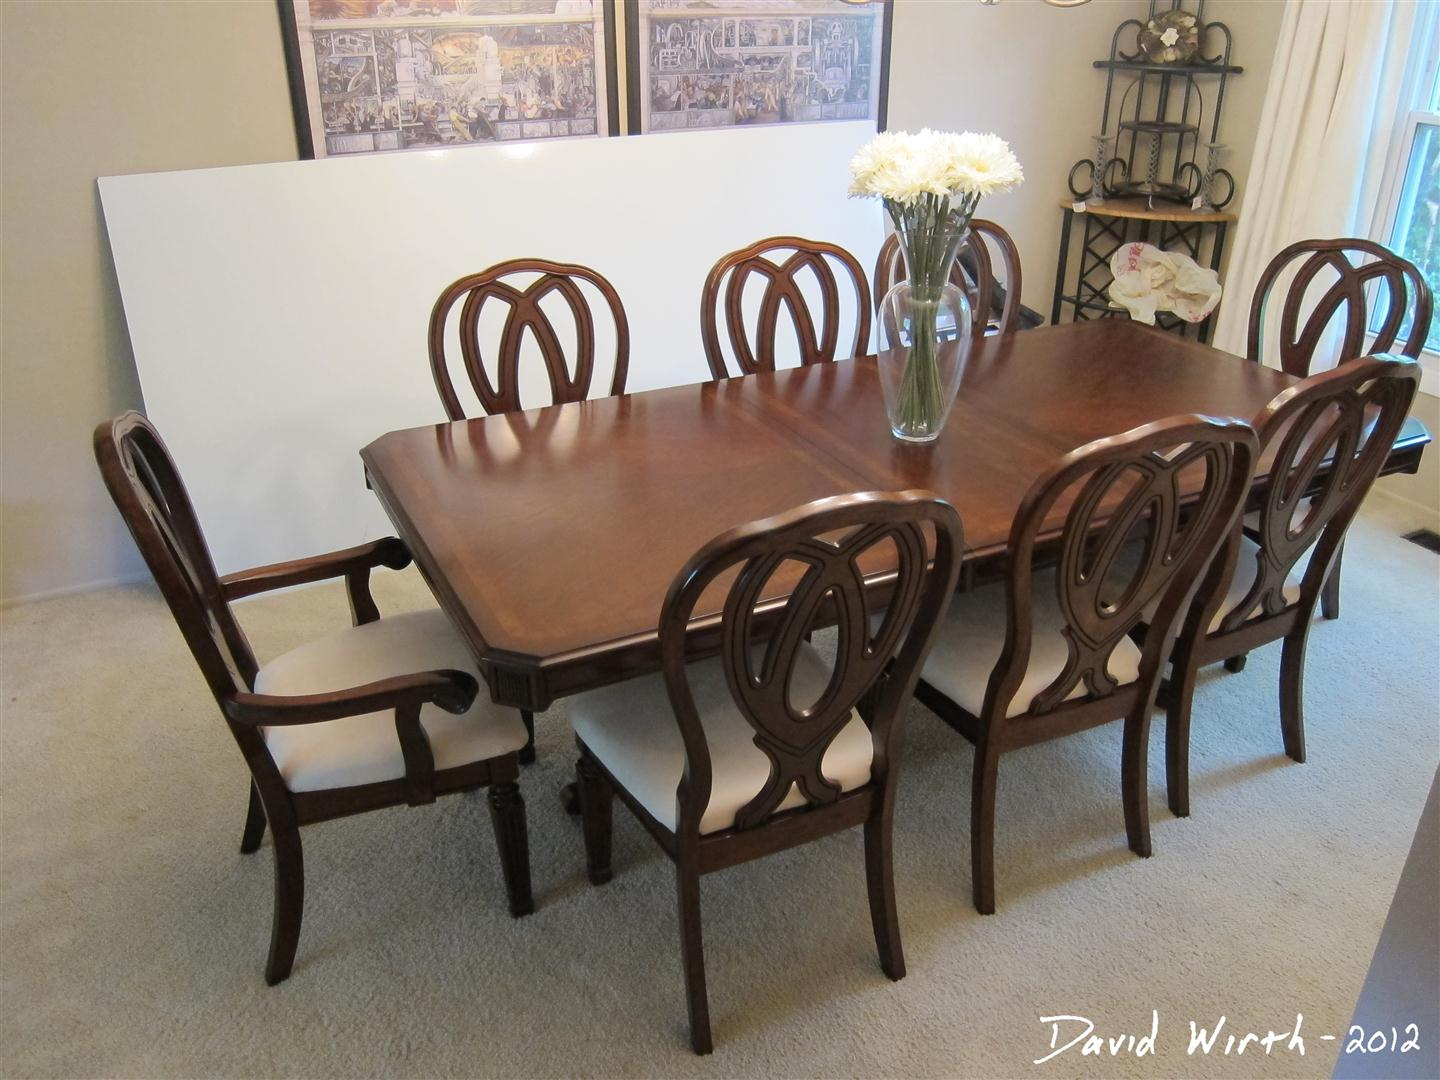 Magnificent Dining Room Table and Chairs 1440 x 1080 · 184 kB · jpeg